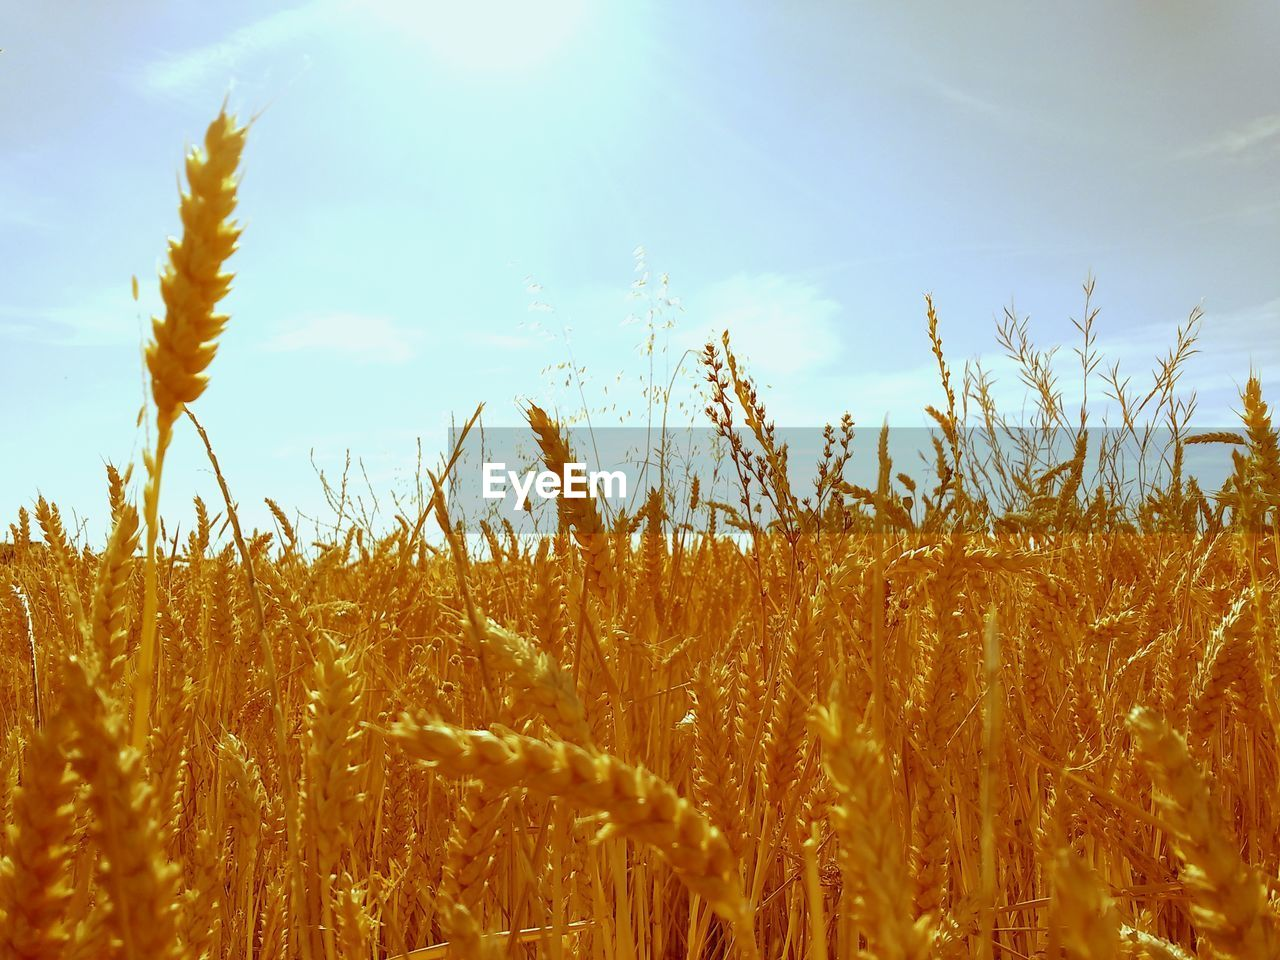 growth, field, nature, cereal plant, agriculture, tranquility, tranquil scene, plant, beauty in nature, crop, wheat, no people, day, outdoors, ear of wheat, sky, rural scene, close-up, landscape, scenics, freshness